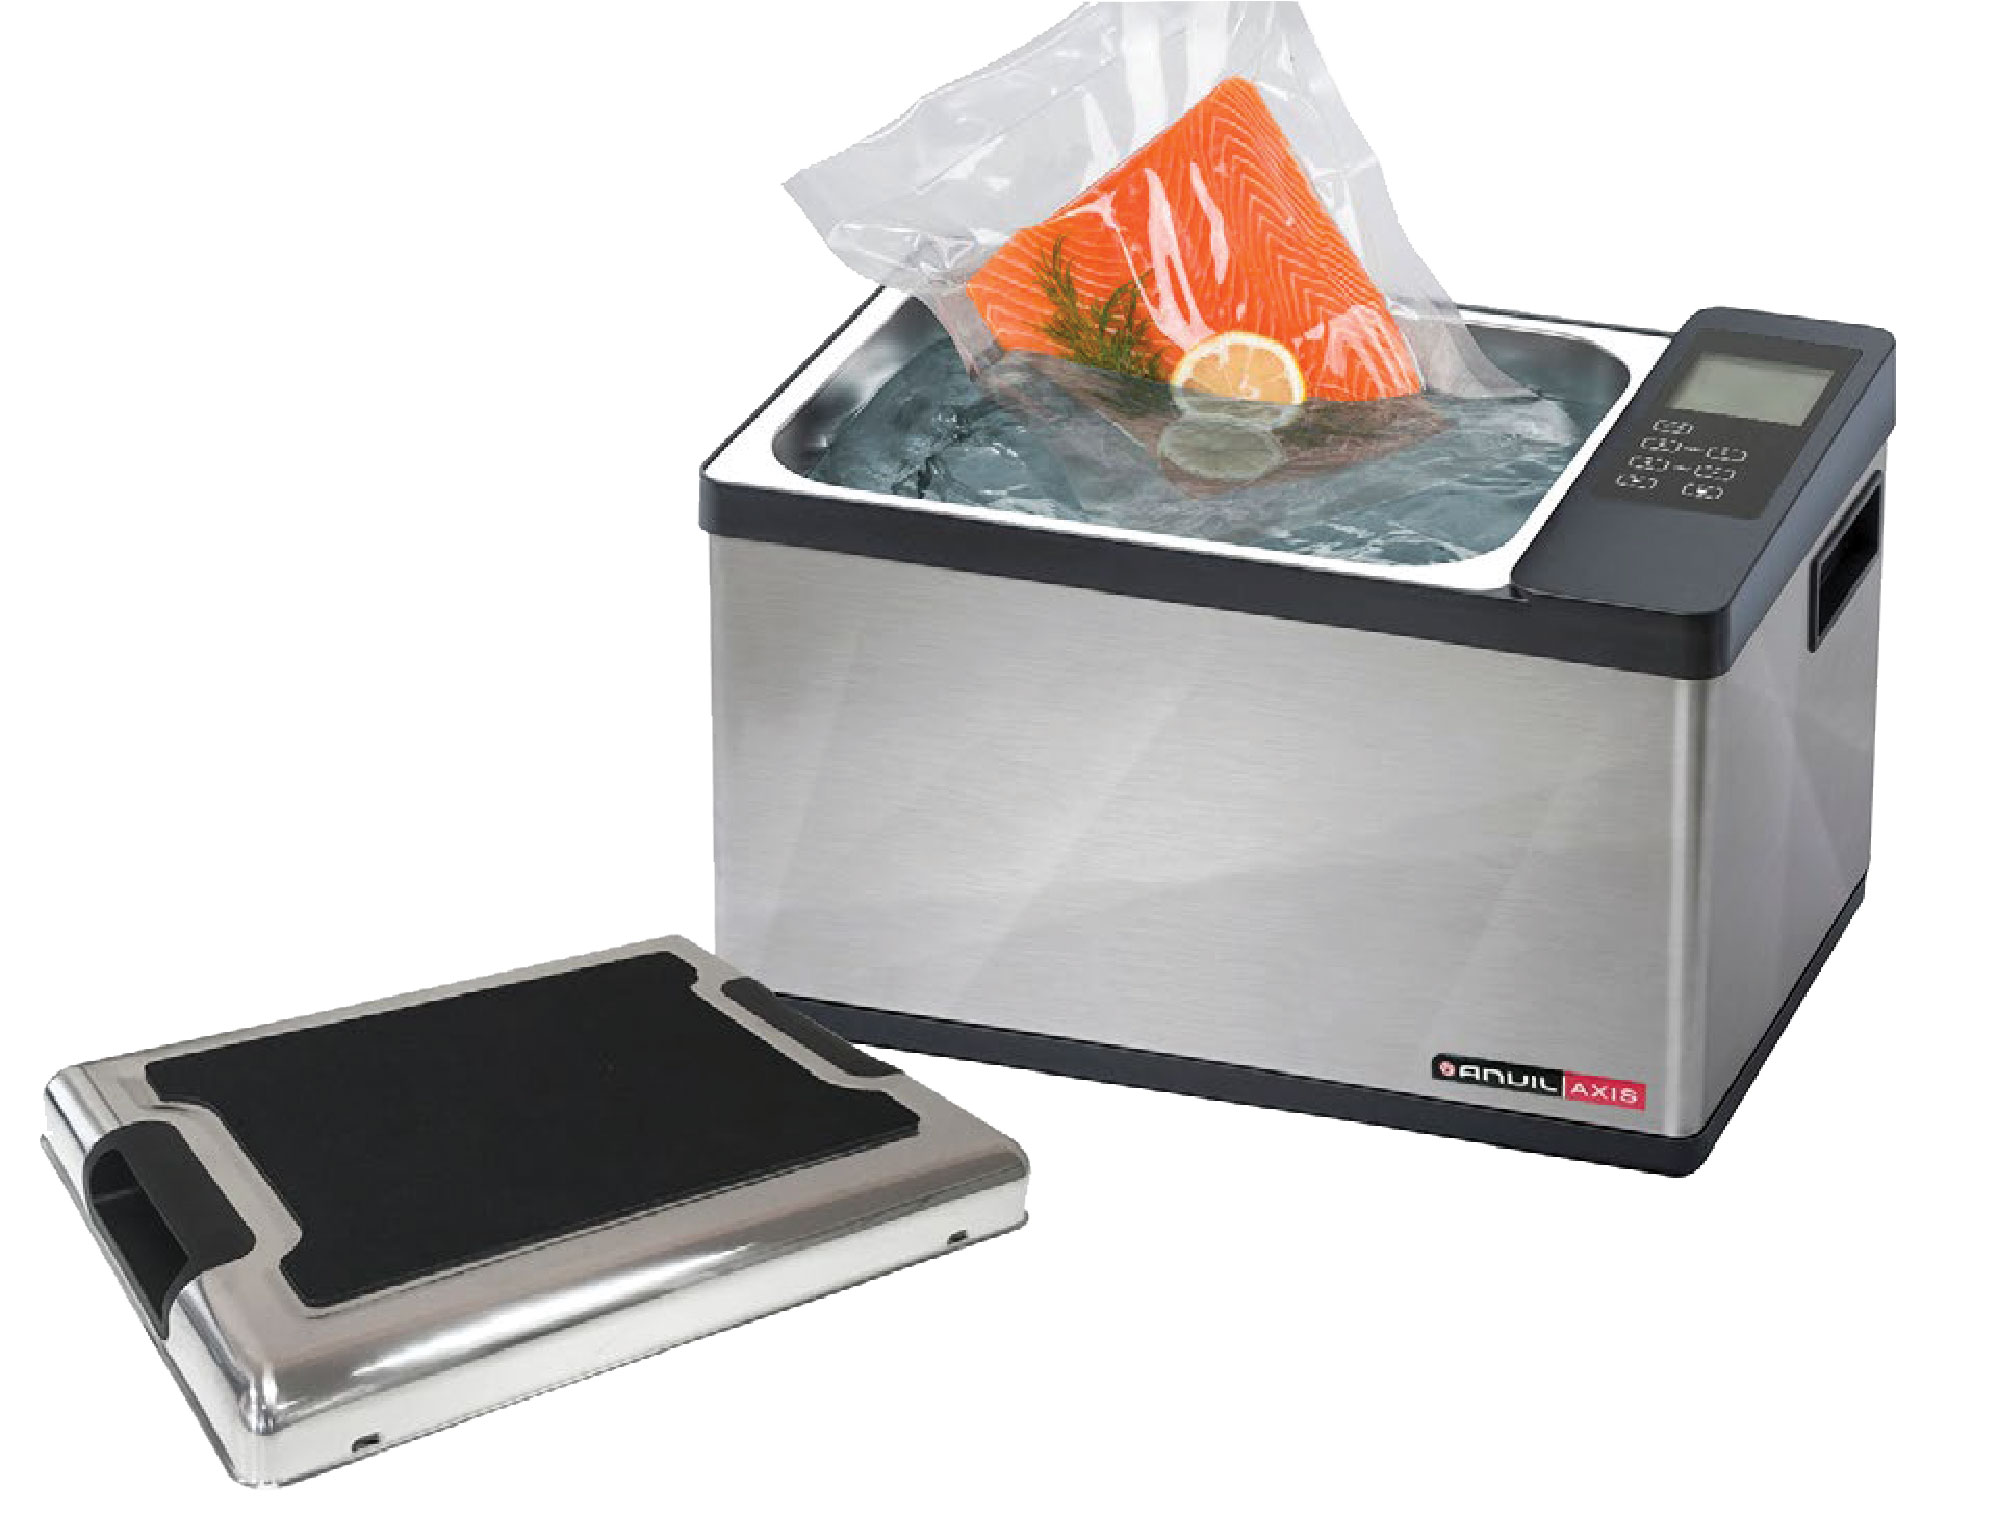 SOUS VIDE BATH AND CIRULATOR COMPLETE UNIT